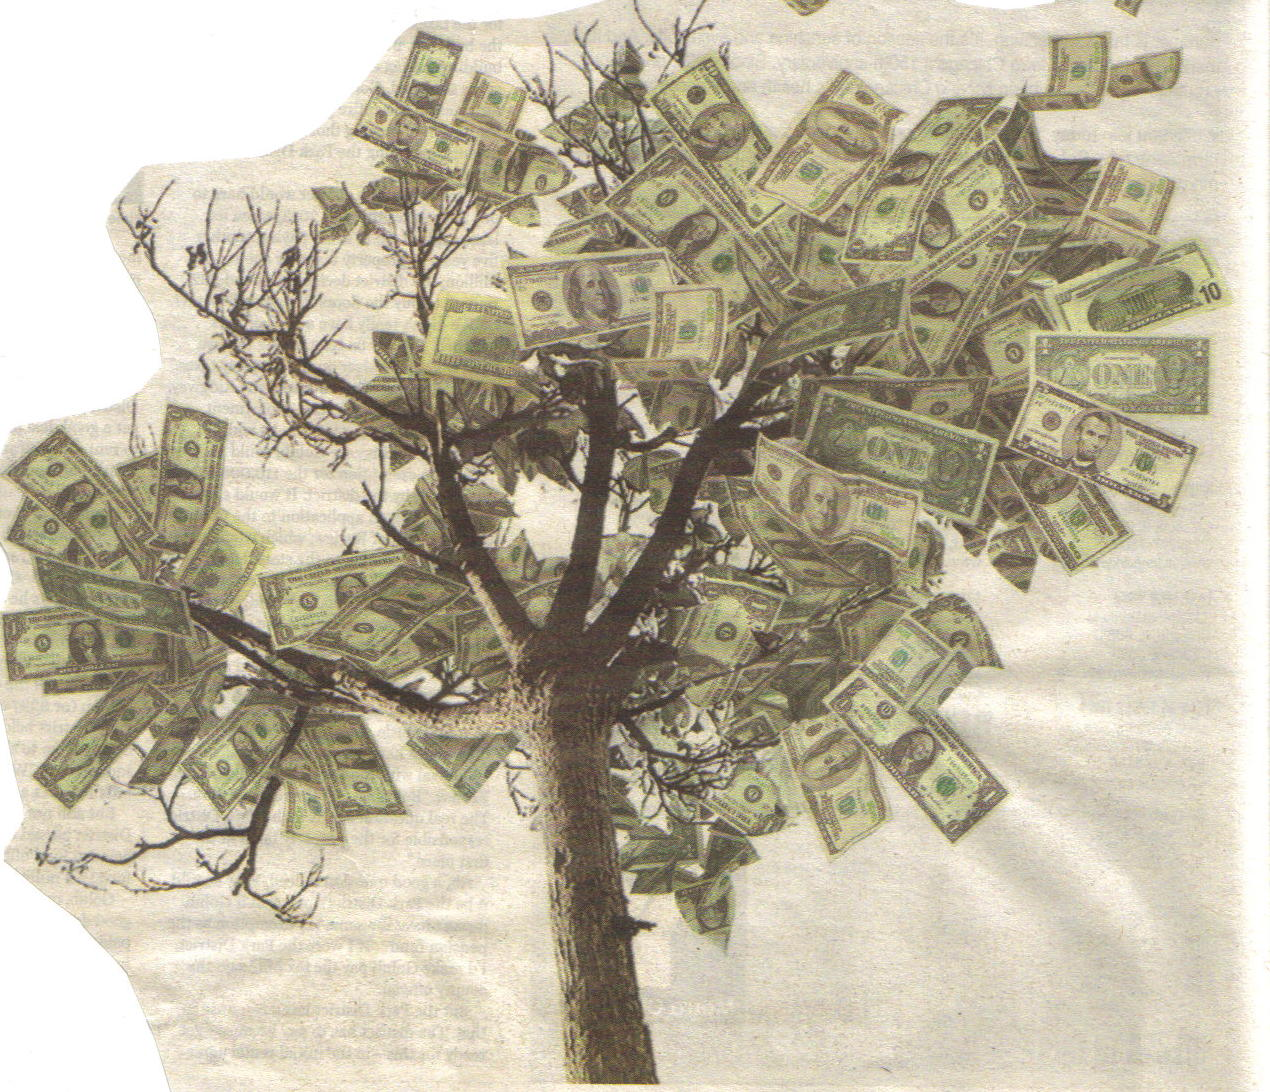 #285 – Suicide CCLXXXV – The Money Tree – Go Find The Others